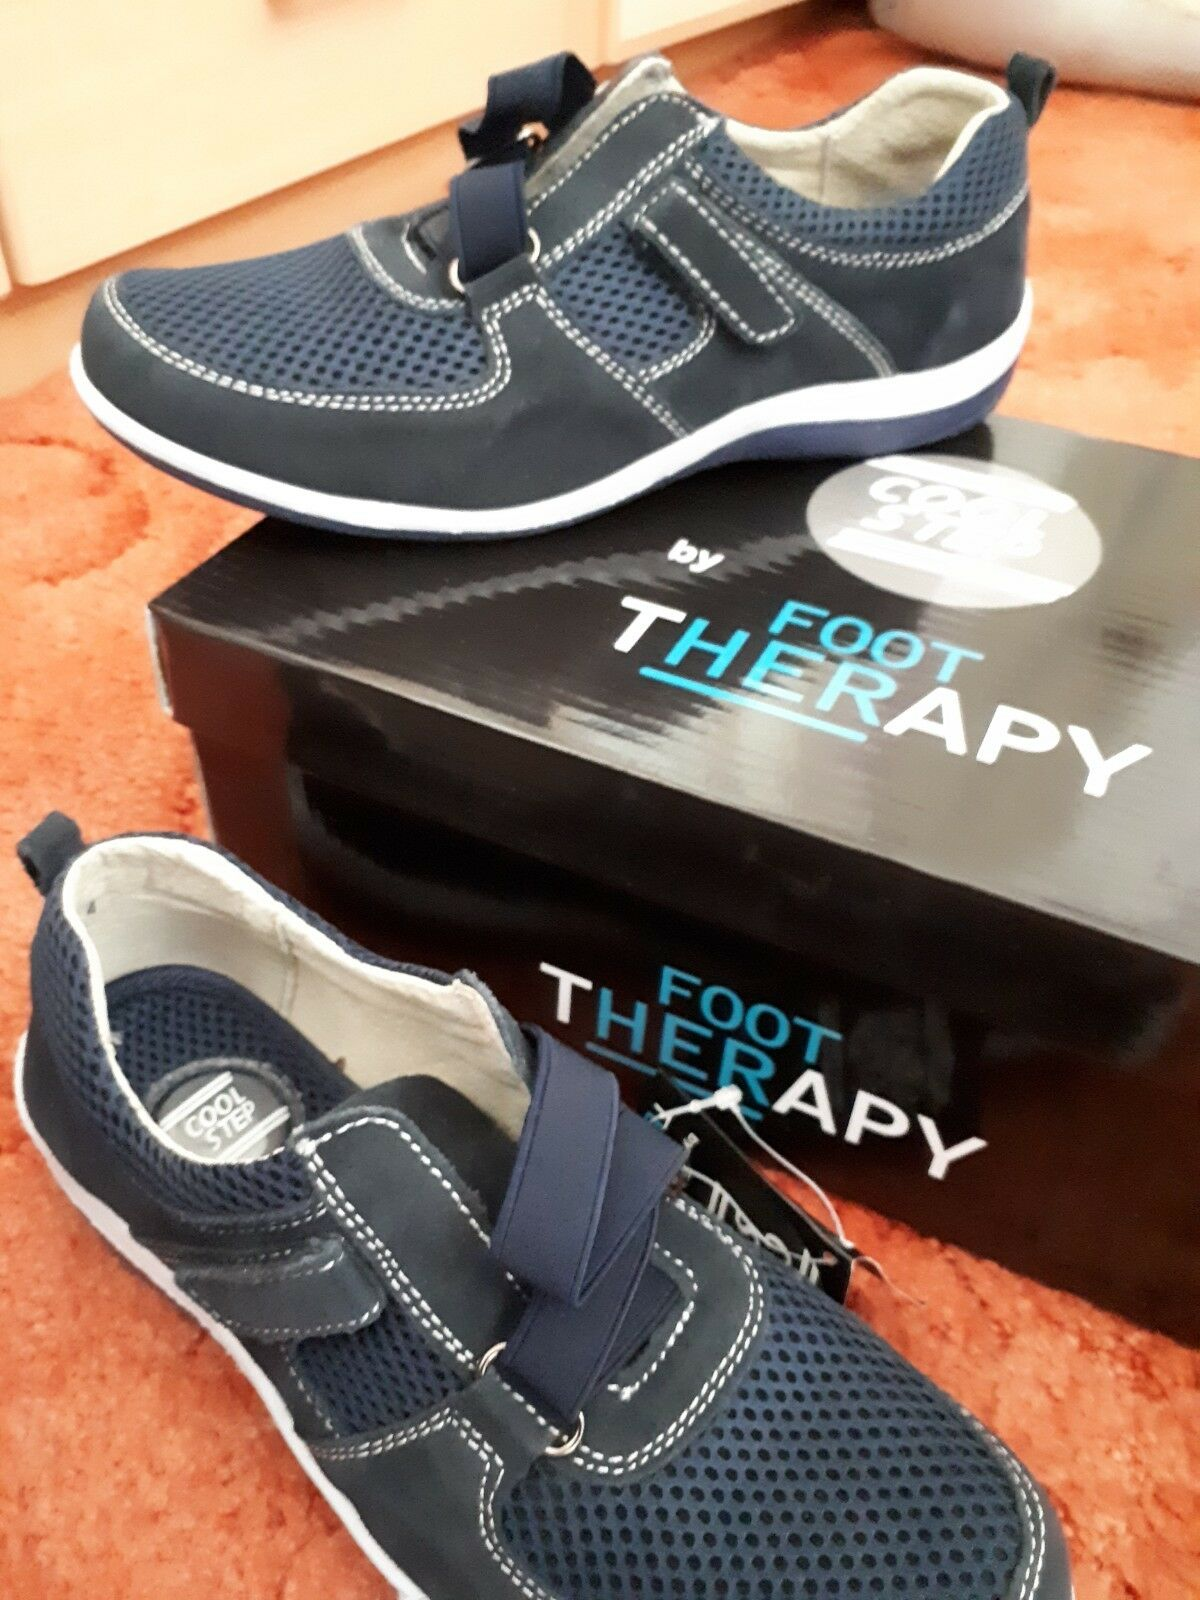 Foot Therapy Ladies Navy Casual Suede Leather shoes Size UK 4 EU 37. Velcro